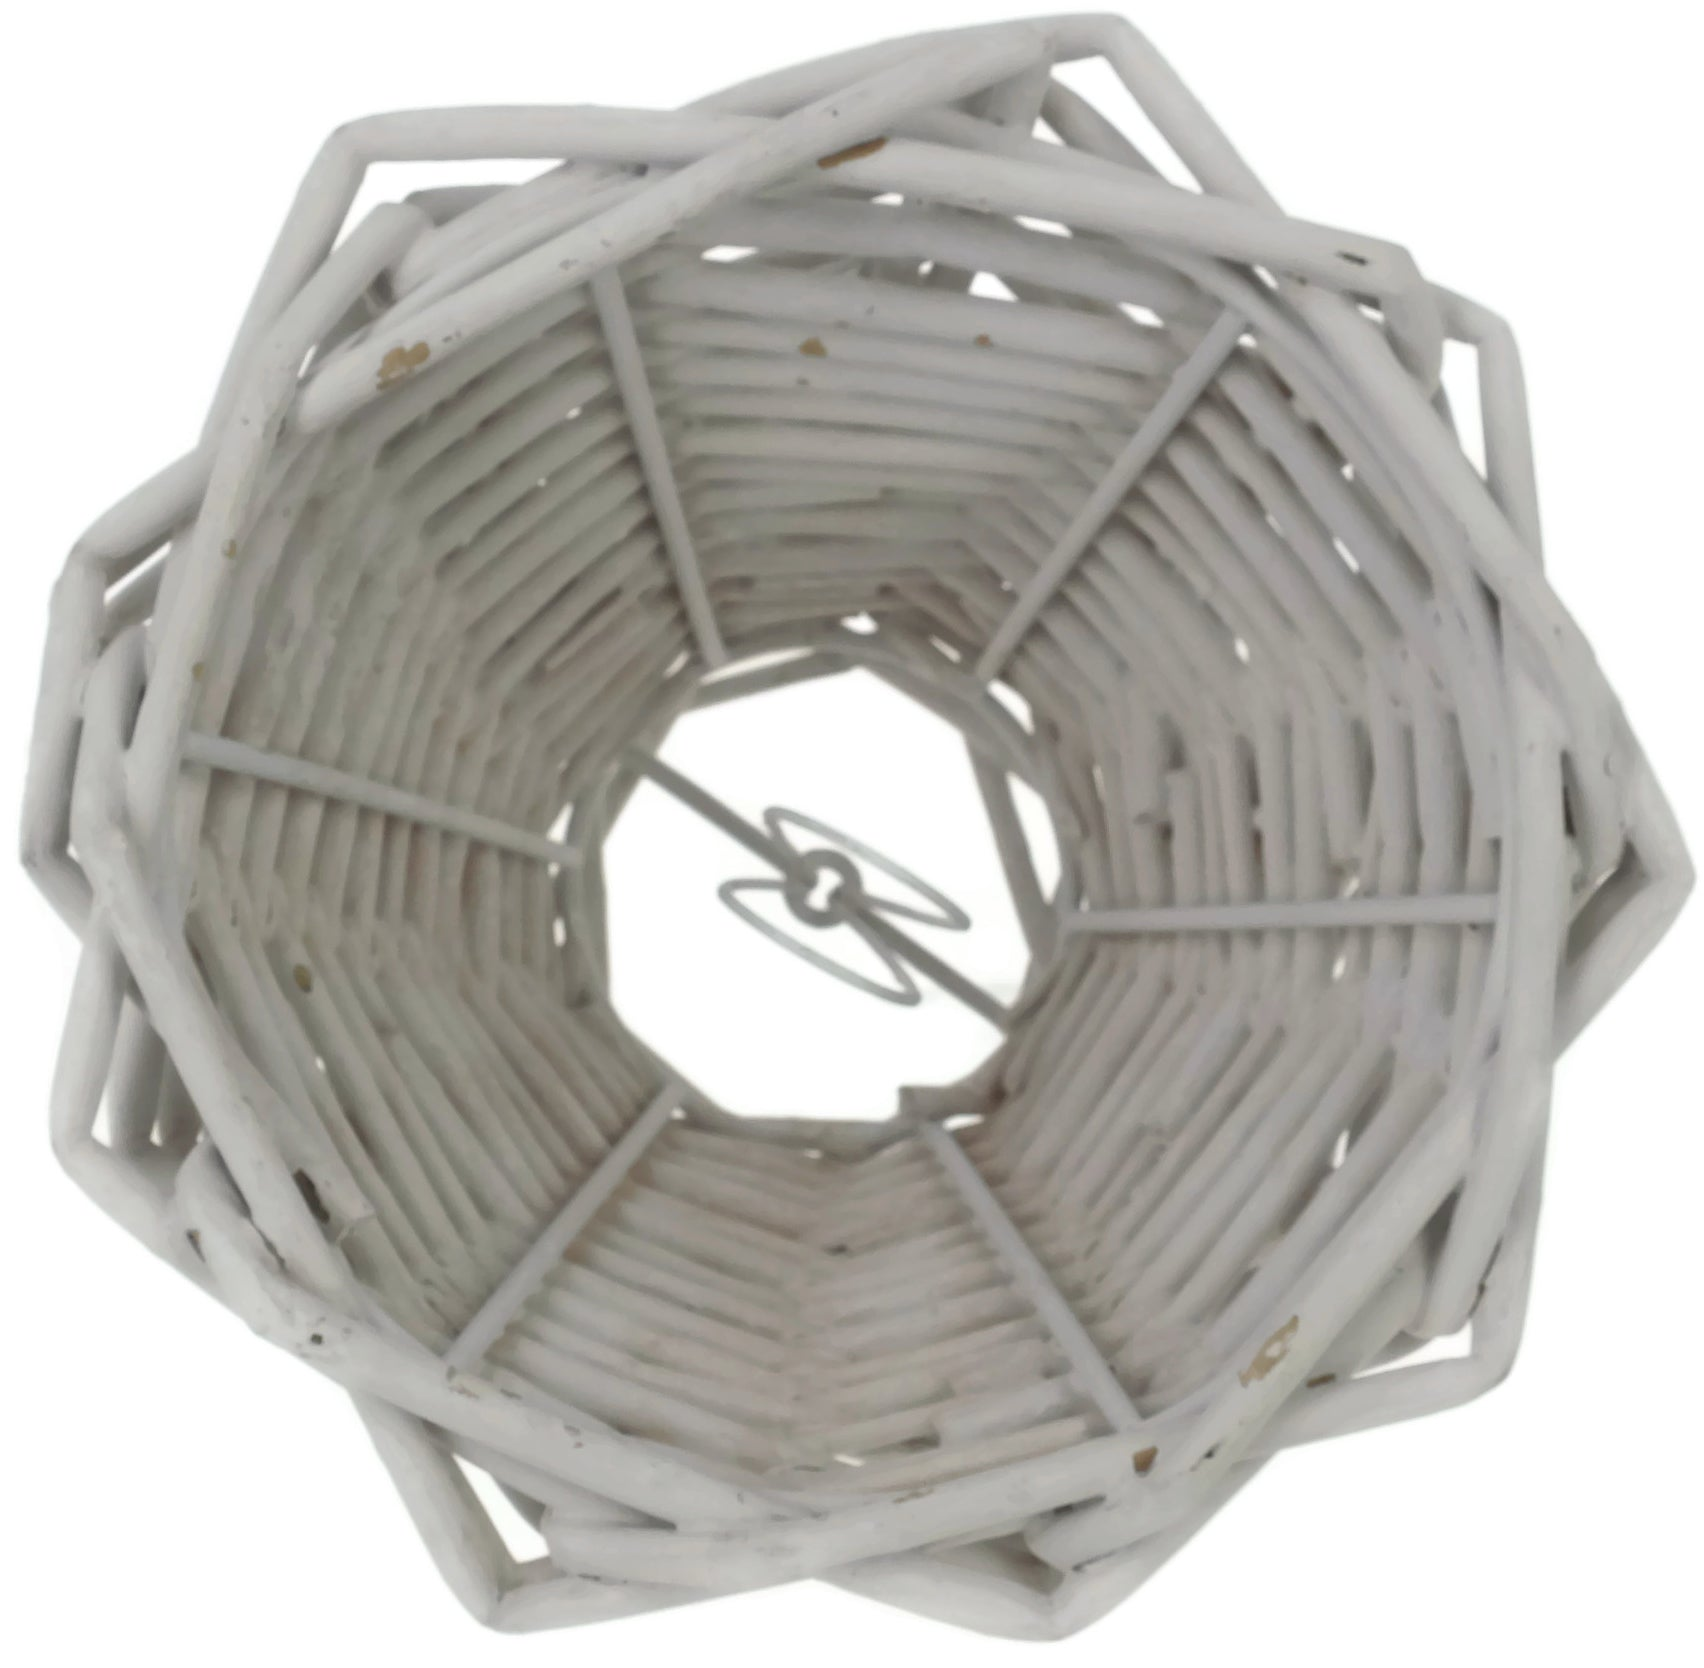 Wicker Chandelier Lamp Shade, 3-inch by 6-inch by 5-inch, Clip-on